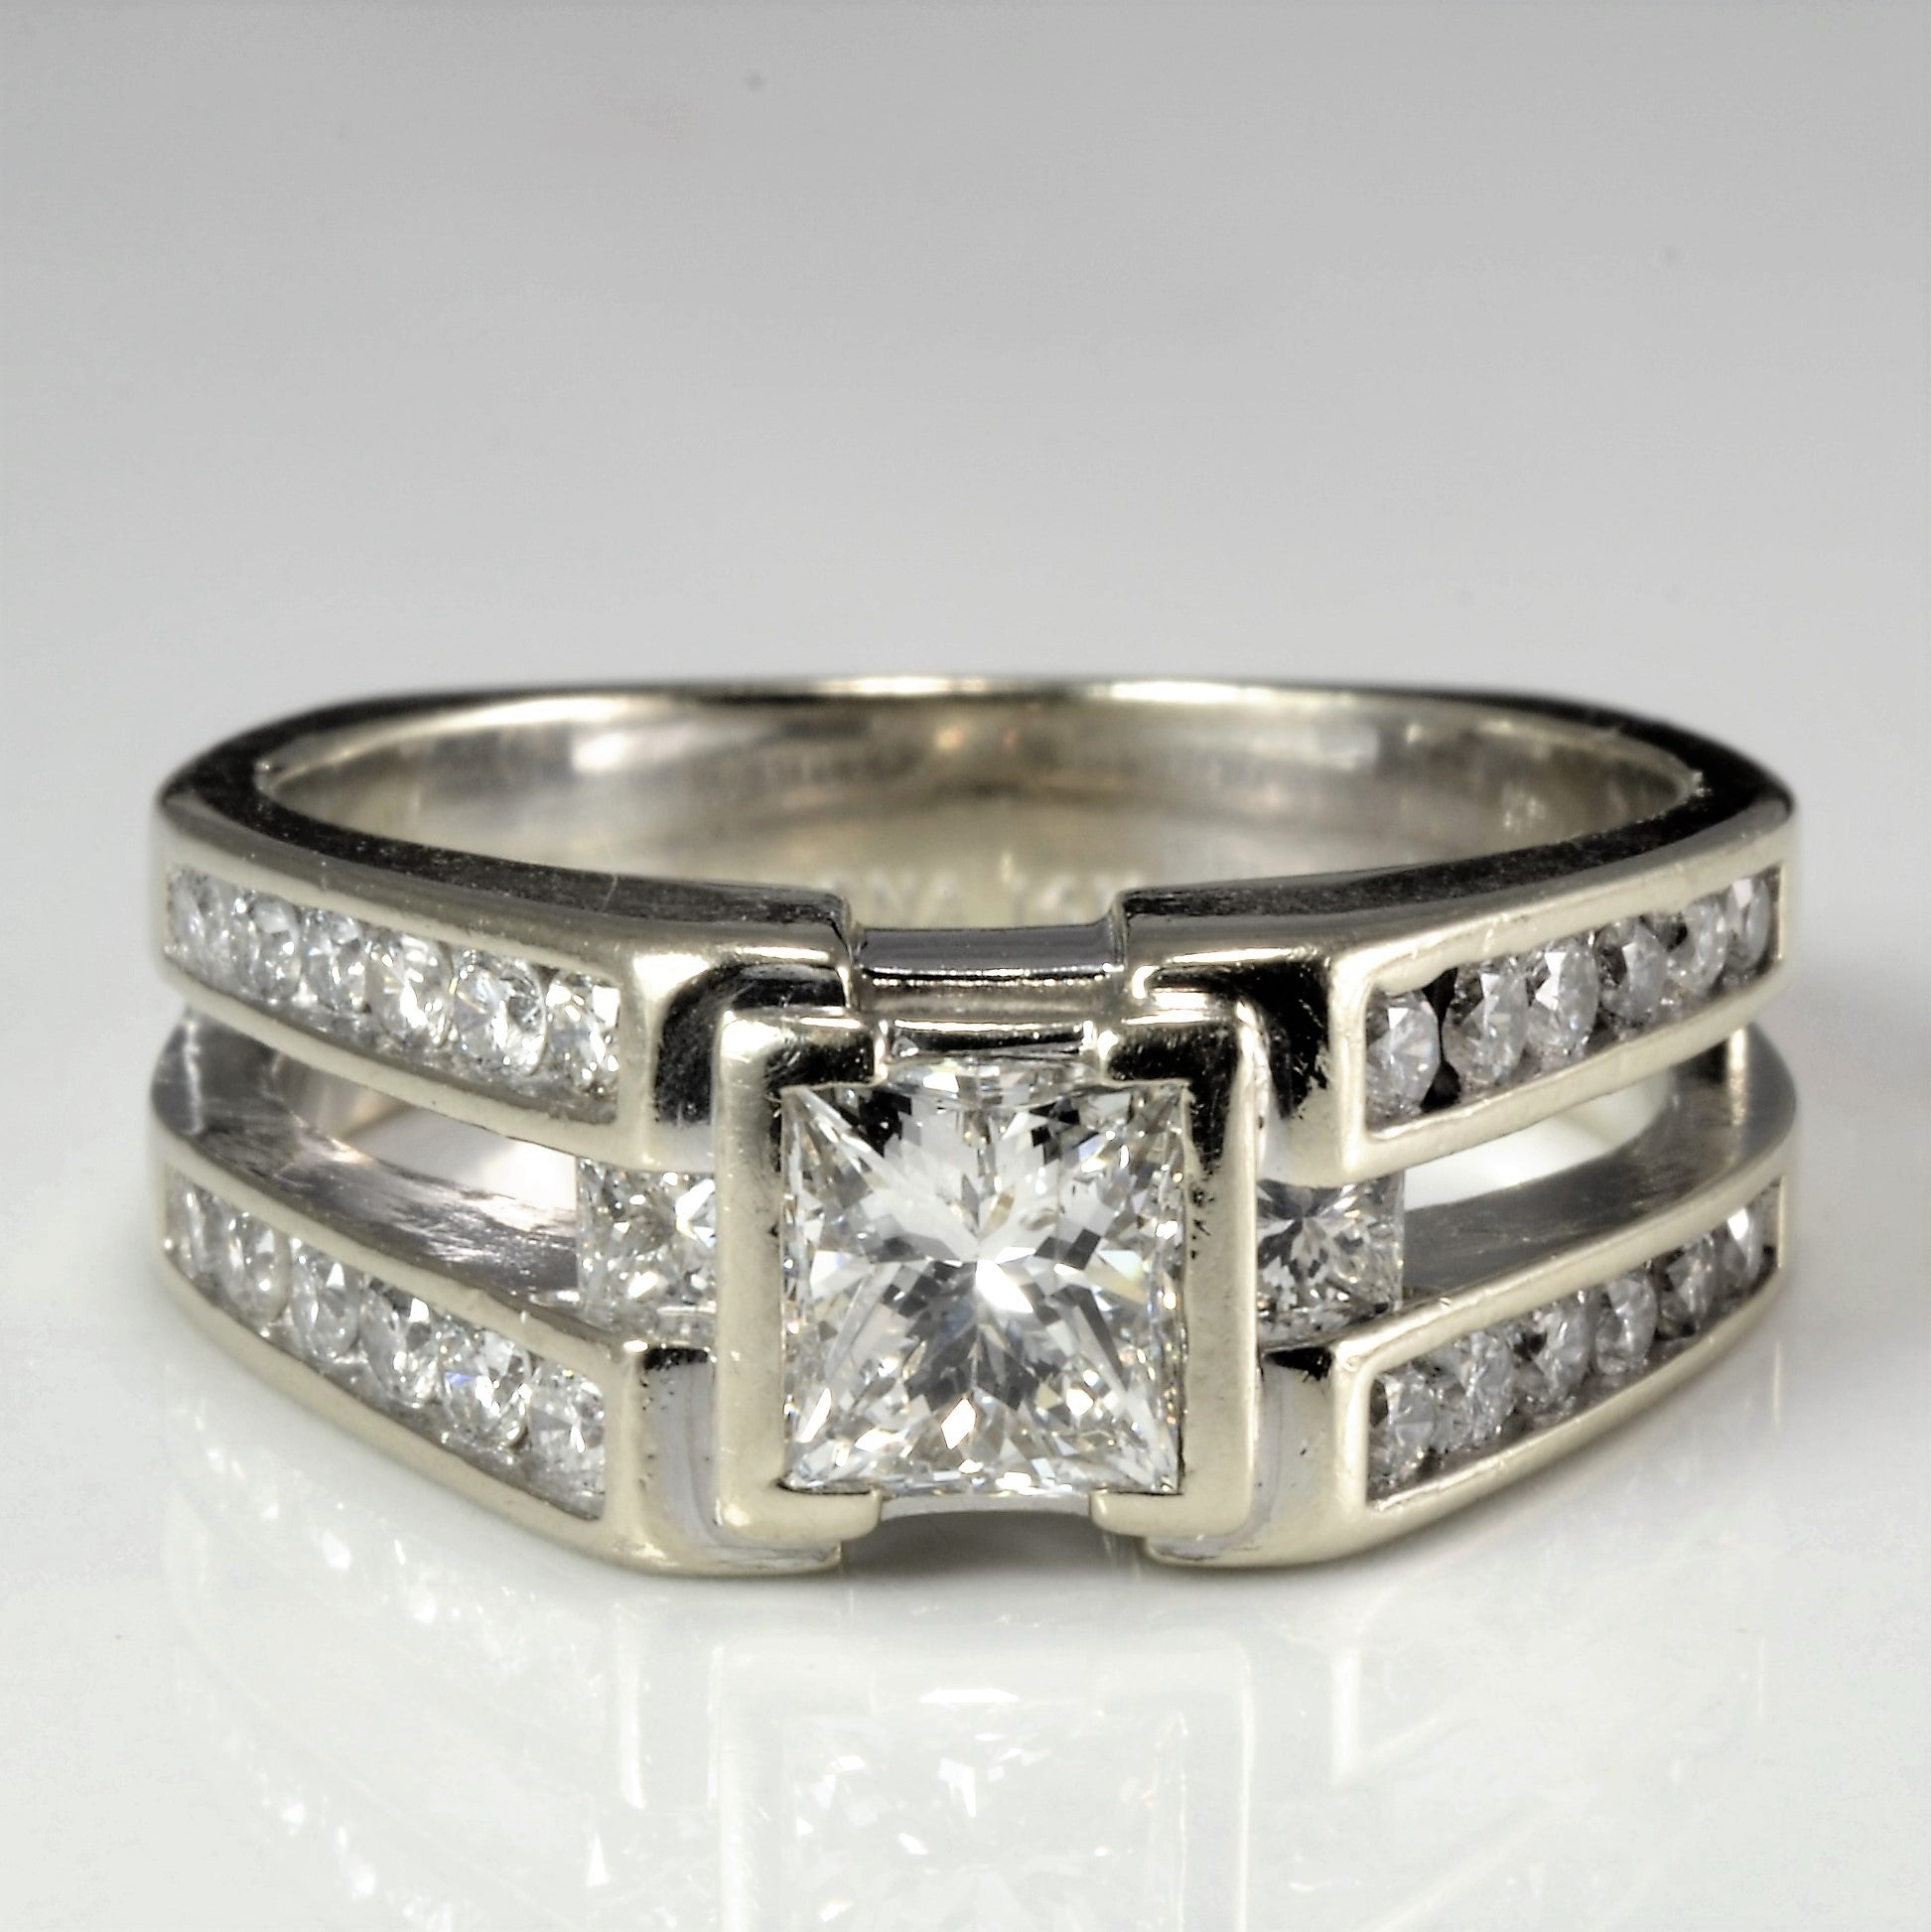 Semi Bezel Set Diamond Engagement Ring | 1.17 ctw, SZ 6.5 |